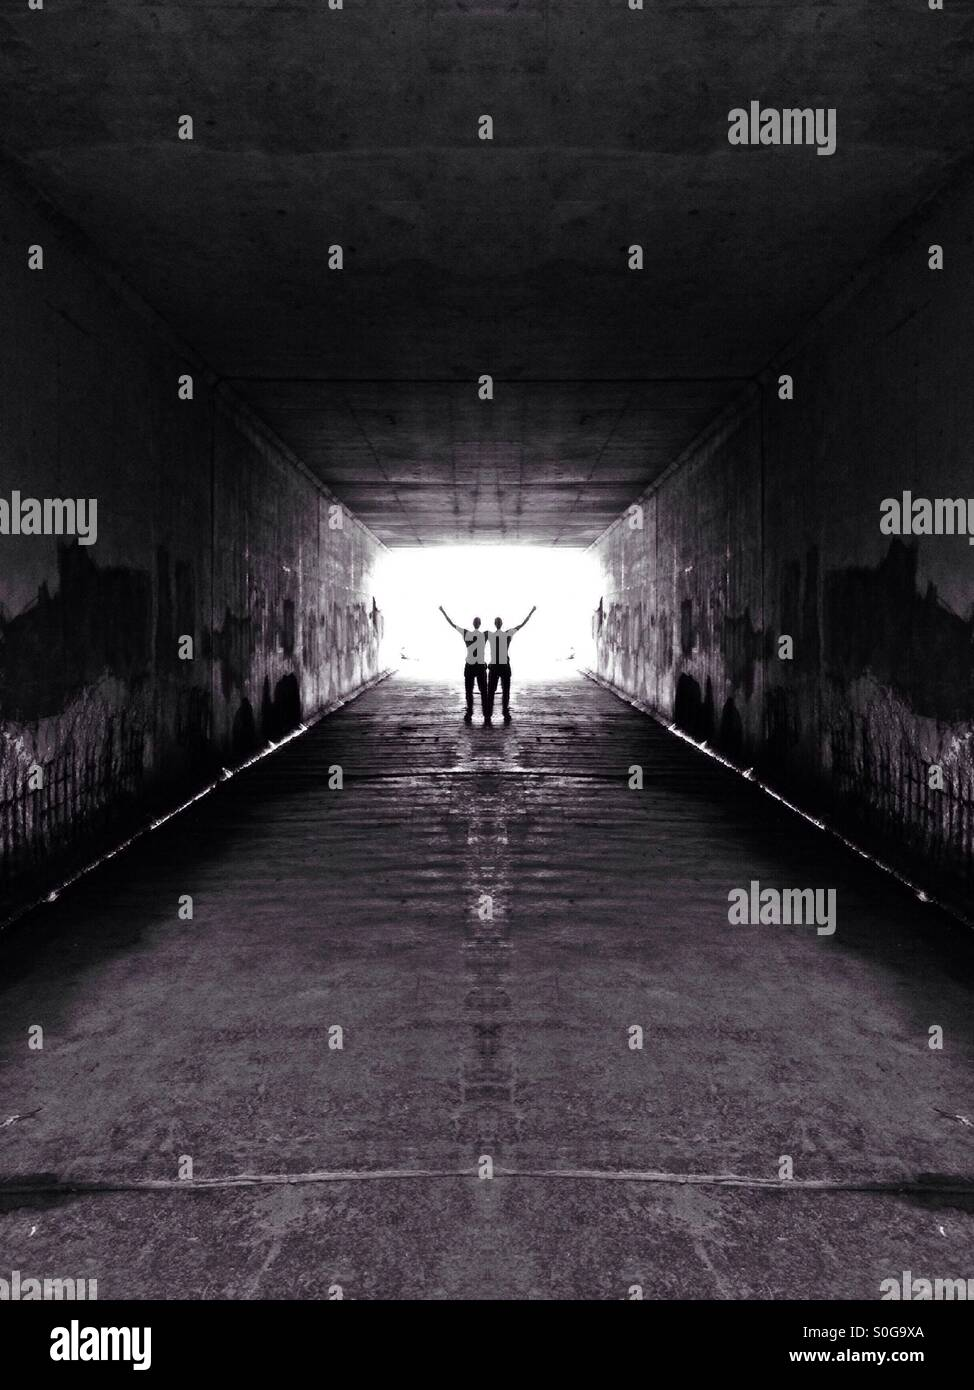 Symmetrical image of a man stood at the end of a tunnel - Stock Image